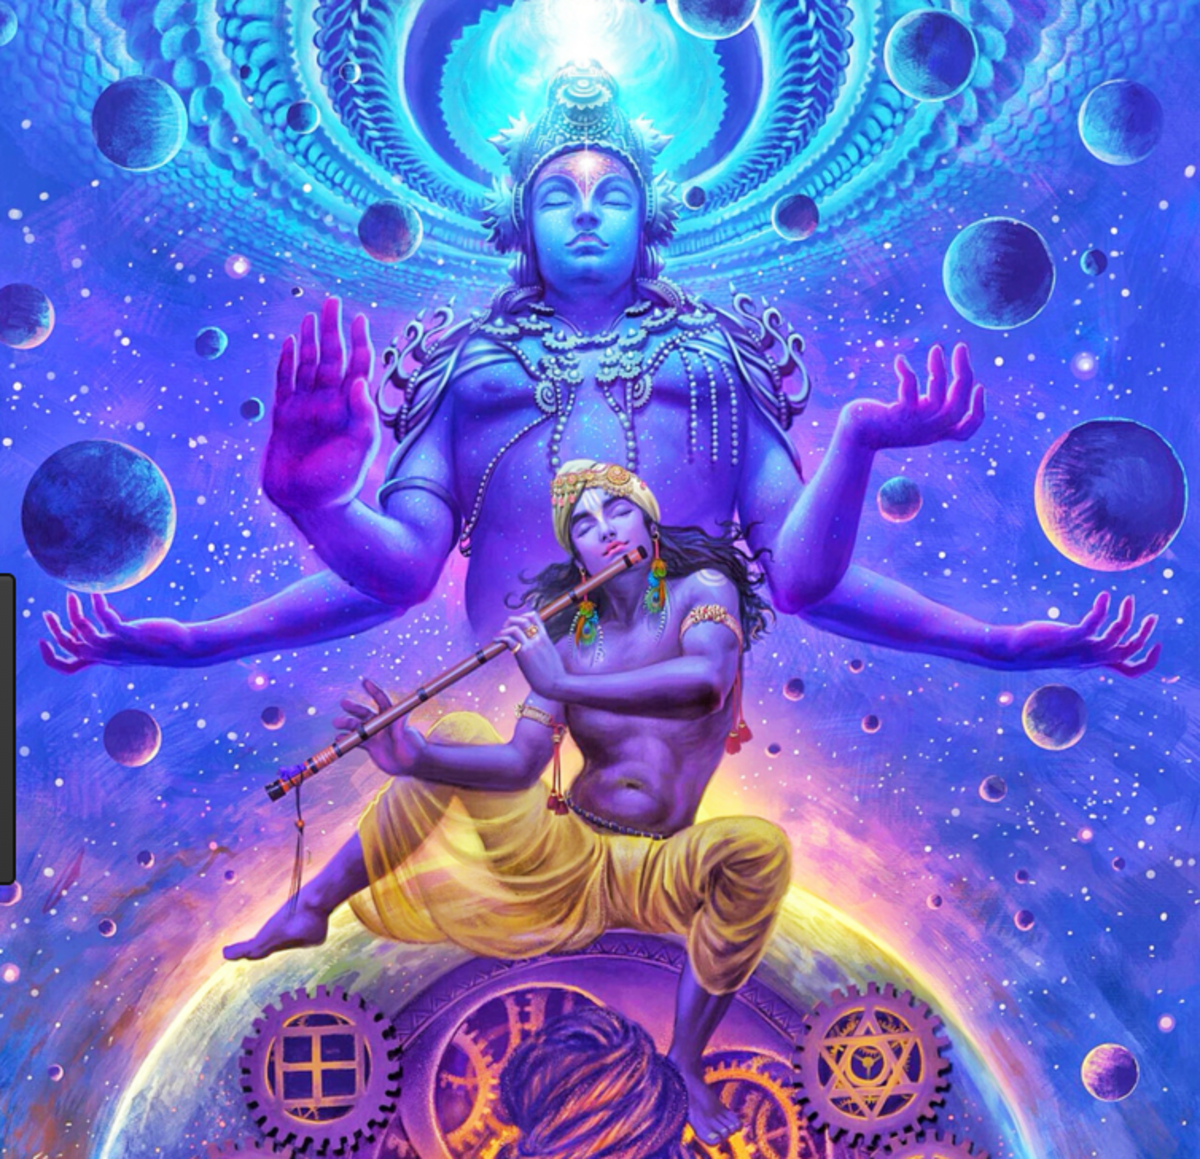 Lord Krishna in his cosmic form as mentioned in Hinduism text of Bhagavad Gita